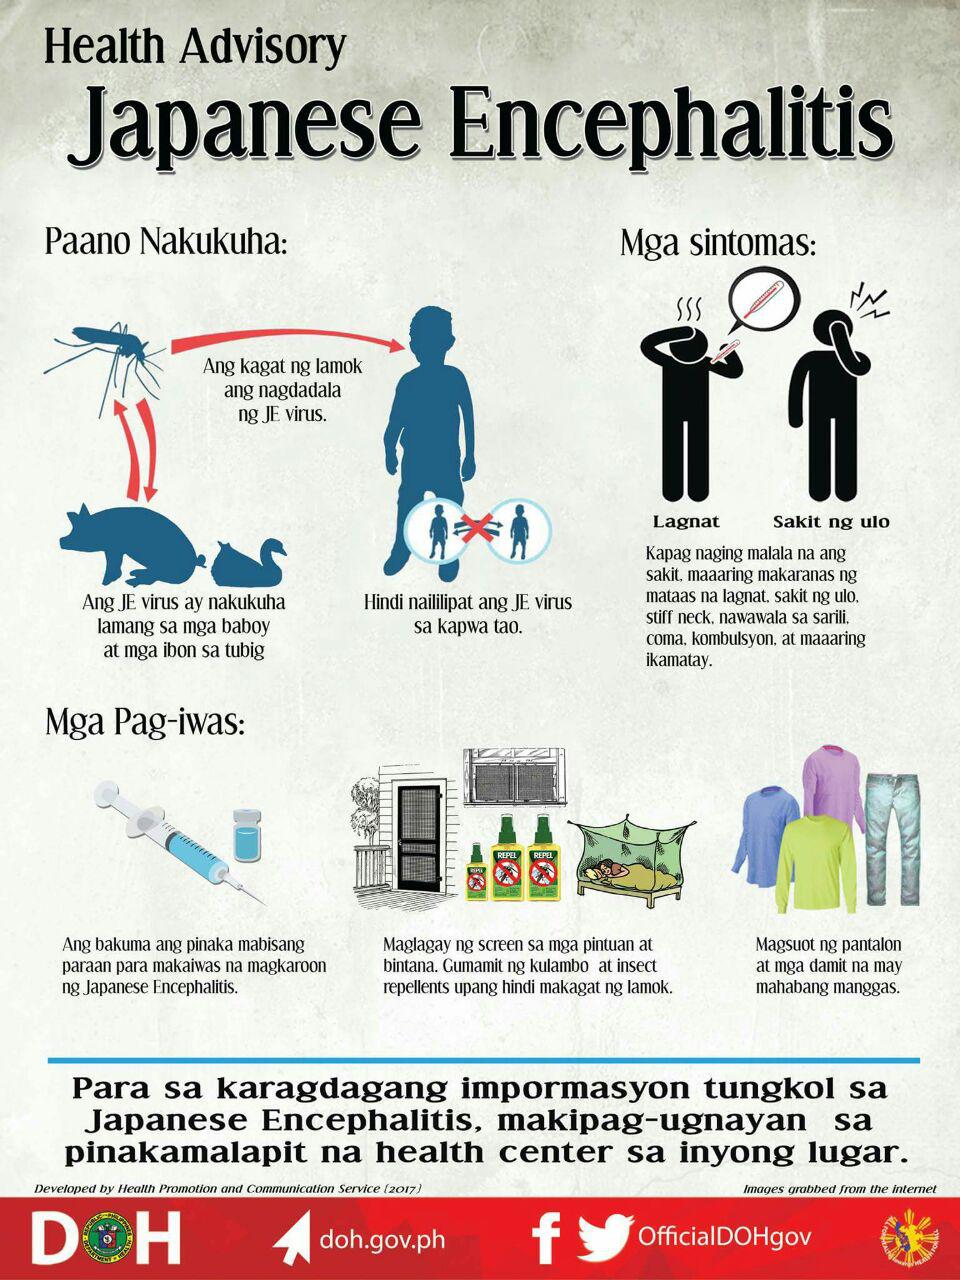 The Department of Health (DOH) urged the public to intensify their efforts against getting mosquito bites, following 9 deaths caused by Japanese encephalitis (JE) this year - 7 from Central Luzon, one from Ilocos, and one from Calabarzon.  There are currently 133 patients suspected of having the virus, and almost 60 of them already confirmed. The disease could be prevented by vaccine, but once infected, there is no cure for the virus itself except the patient's own immune system. Only the symptoms of the disease may be treated. In the Philippines, the vaccine is currently only available commercially. Government centers will have the vaccine next year.  Here's what you need to know about this potentially deadly disease and how to protect yourself from it.  What is Japanese encephalitis? Japanese encephalitis virus (JEV) is a flavivirus related to dengue, yellow fever and West Nile viruses, and is spread by mosquitoes. Not all people infected with JEV will get sick or show symptoms. In people who show symptoms, the case-fatality rate can be as high as 30%. There is no cure for the disease. Treatment is focused on relieving severe clinical signs and supporting the patient to overcome the infection. Safe and effective vaccines are available to prevent JEV. The first case of Japanese encephalitis viral disease (JE) was documented in 1871 in Japan. 24 countries in South-East Asia and Western Pacific regions have JEV transmission risk, which includes more than 3 billion people.  What are the symptoms of JE? Most JEV infections are mild (fever and headache) or without apparent symptoms. Approximately 1 in 250 infections results in severe illness requiring hospitalization. It takes 5 to 15 days after the bite of an infected mosquito to develop these symptoms. Severe disease is characterized by rapid onset of high fever, headache, neck stiffness, and disorientation. Later symptoms include swelling around the brain (encephalitis), coma, seizures, spastic paralysis and ultimately death.  What are the effects of the disease? Among those who survive a severe case of JE, 20%–30% suffer permanent intellectual, behavioral or neurological problems such as paralysis, recurrent seizures or the inability to speak.  How is the virus transmitted? JEV is transmitted to humans through bites from infected mosquitoes of the Culex species (mainly Culex tritaeniorhynchus). Humans cannot transfer the virus to others, even through mosquito bites. The virus is commonly transmitted between mosquitoes, pigs and/or water birds.  The disease is mostly found in rural and sub-urban settings, where humans live near to animals. In the tropical and subtropical regions, transmission can occur year-round but often intensifies during the rainy season and pre-harvest period in rice-cultivating regions.  What to do if you get bitten by a mosquito, feel sick or may have JE? Avoid scratching mosquito bites. Apply hydrocortisone cream or calamine lotion to reduce itching. Go the the clinic and inform the doctor of your circumstance - travel location, insect bites. Use Paracetamol (acetaminophen). Do not take pain relievers that contain aspirin and ibuprofen (Advil), it may lead to a greater tendency to bleed.  How is the disease diagnosed? Individuals who live in or have traveled to an area where there are cases of JE are reported, and experience some symptoms are considered a suspected JE case. Verification of the infection requires a blood (serum) test. But cerebrospinal fluid is preferred.  How is the disease treated? There is no antiviral treatment for patients with JE. Treatment is provided only to relieve the symptoms of the disease and help stabilize the patient to overcome the virus. Just like dengue, overcoming the JE virus gives the patient a certain level of immunity for the JEV.  How to prevent getting infected with JEV? Safe and effective JE vaccines are available to prevent disease. There are 4 main types of JE vaccines currently in use: inactivated mouse brain-derived vaccines inactivated Vero cell-derived vaccines live attenuated vaccines live recombinant vaccines Personal preventive measures include the use of repellents, long-sleeved clothes, coils and vaporizers.    sources: World Health Org., ABS-CBN, Center for Disease Control